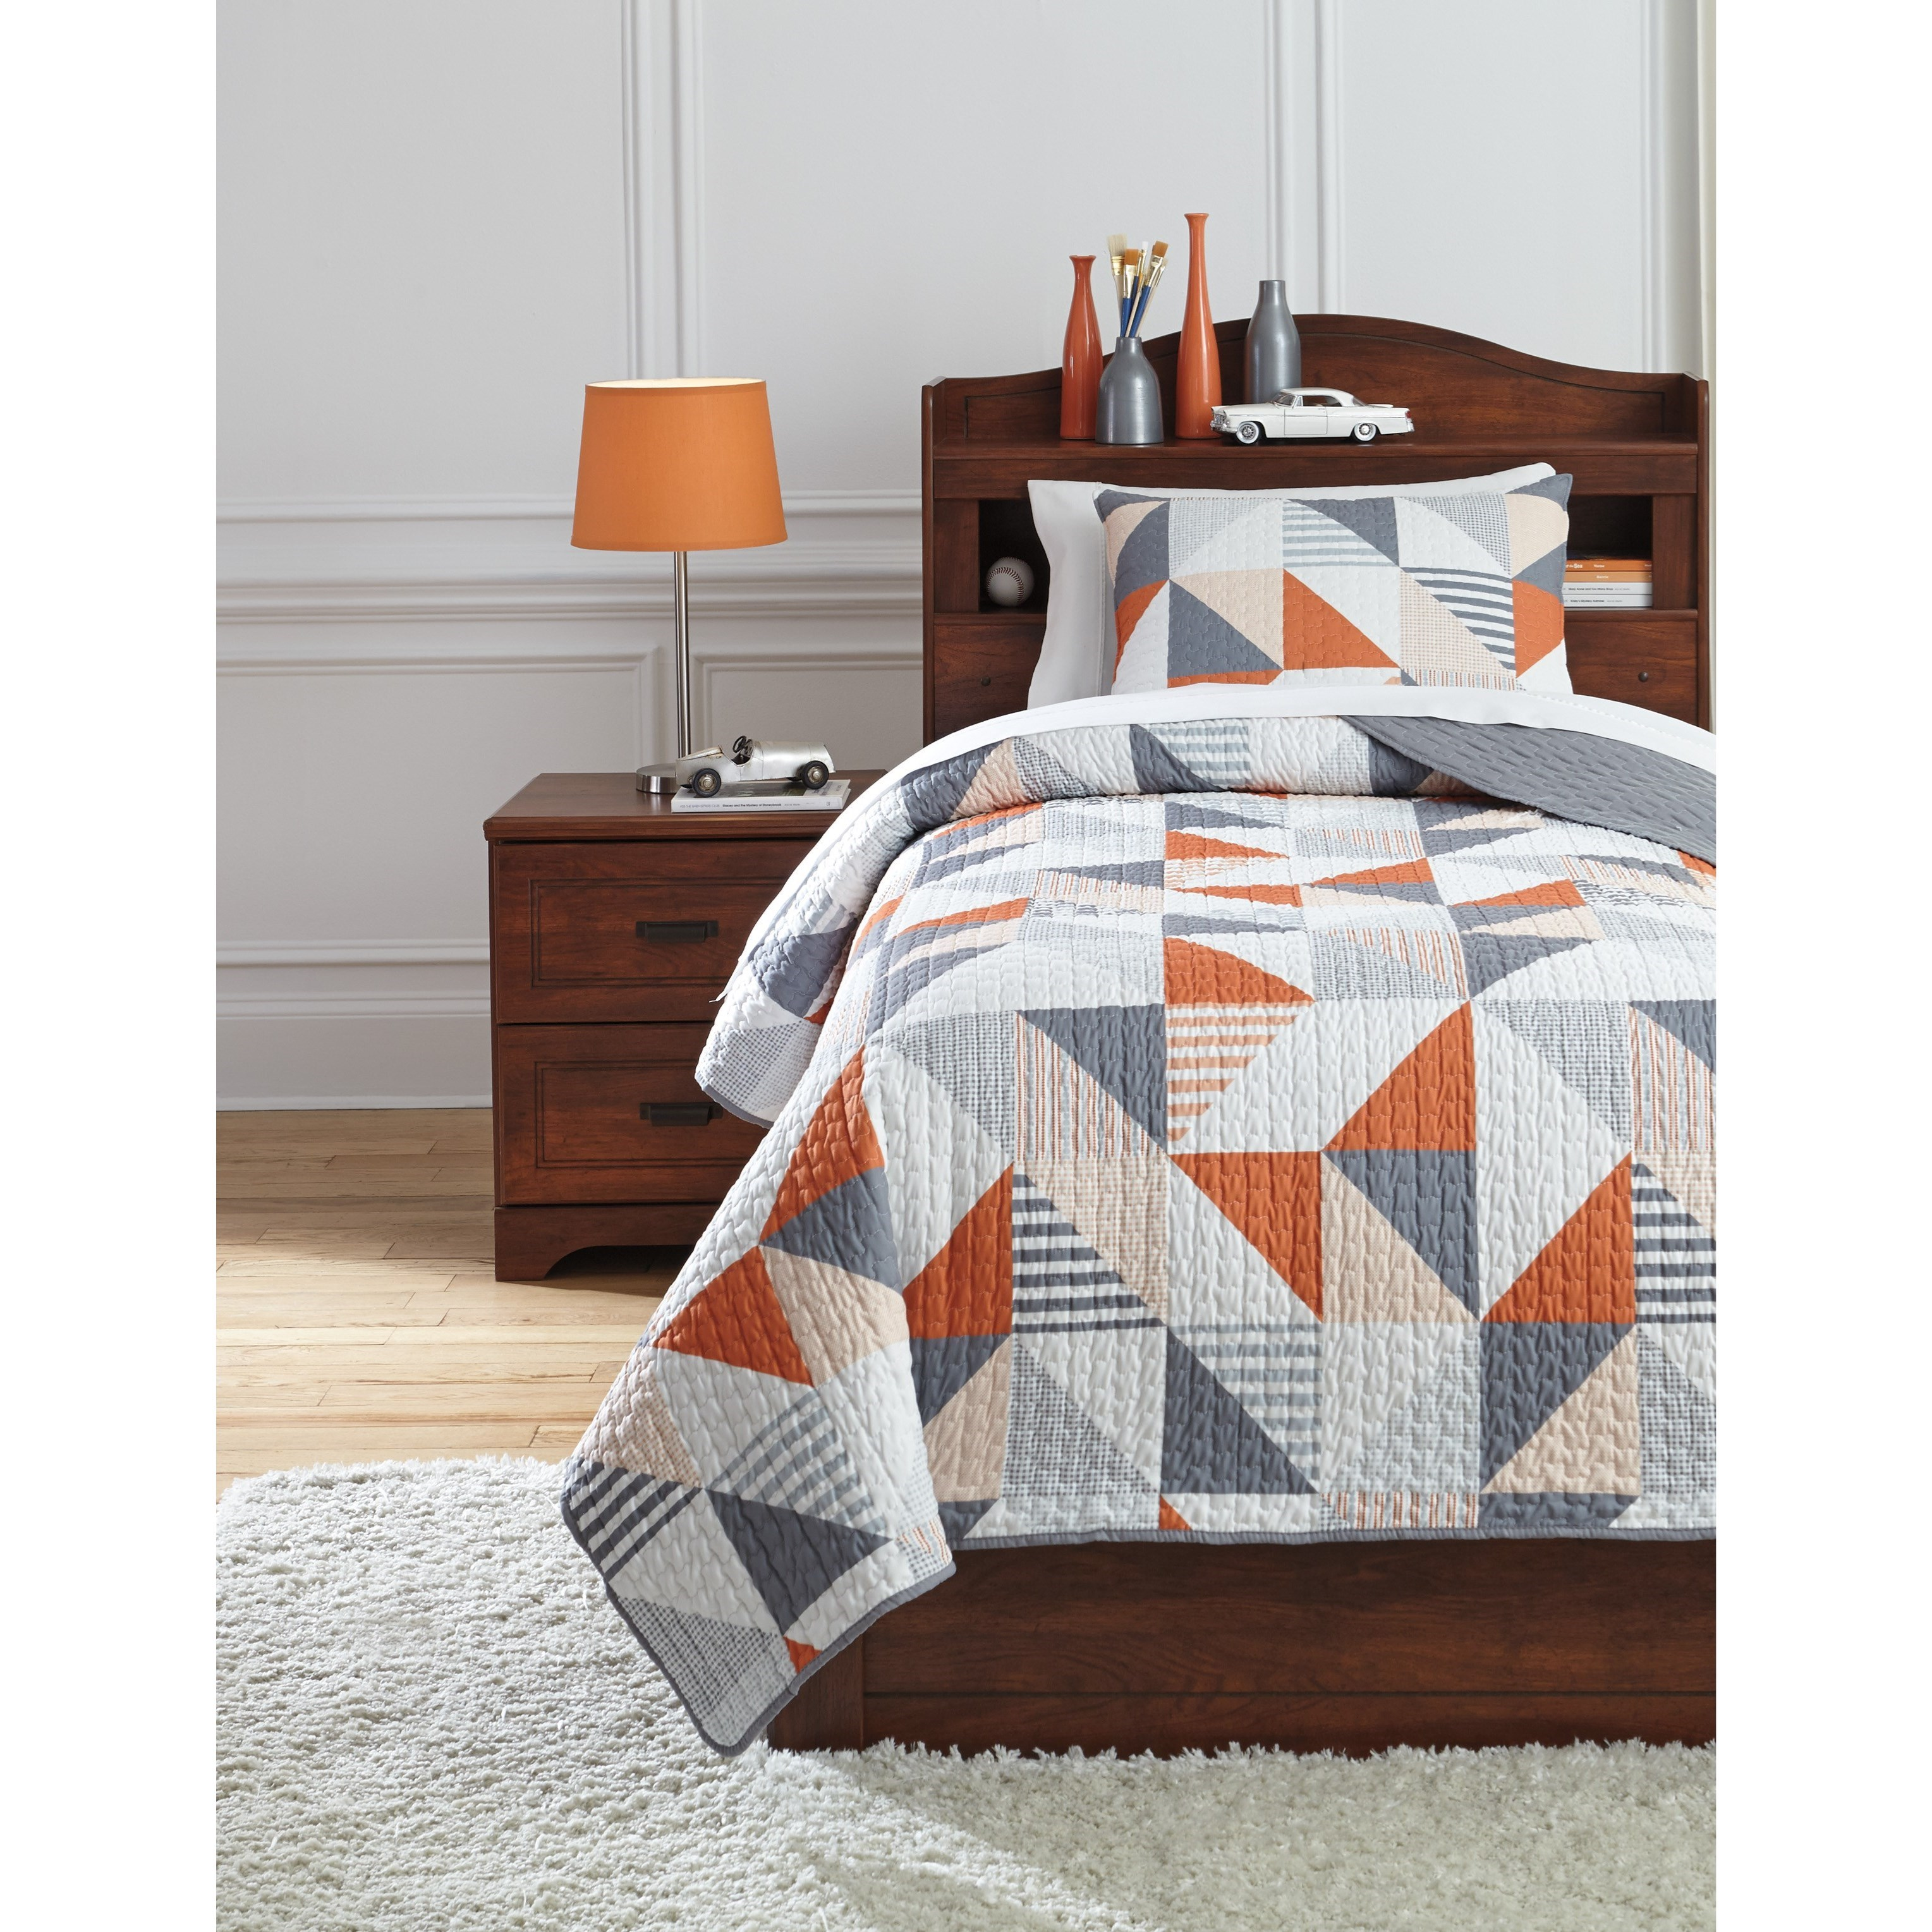 Bedding Sets Twin Layne Multi Coverlet Set by Signature Design by Ashley at Zak's Warehouse Clearance Center